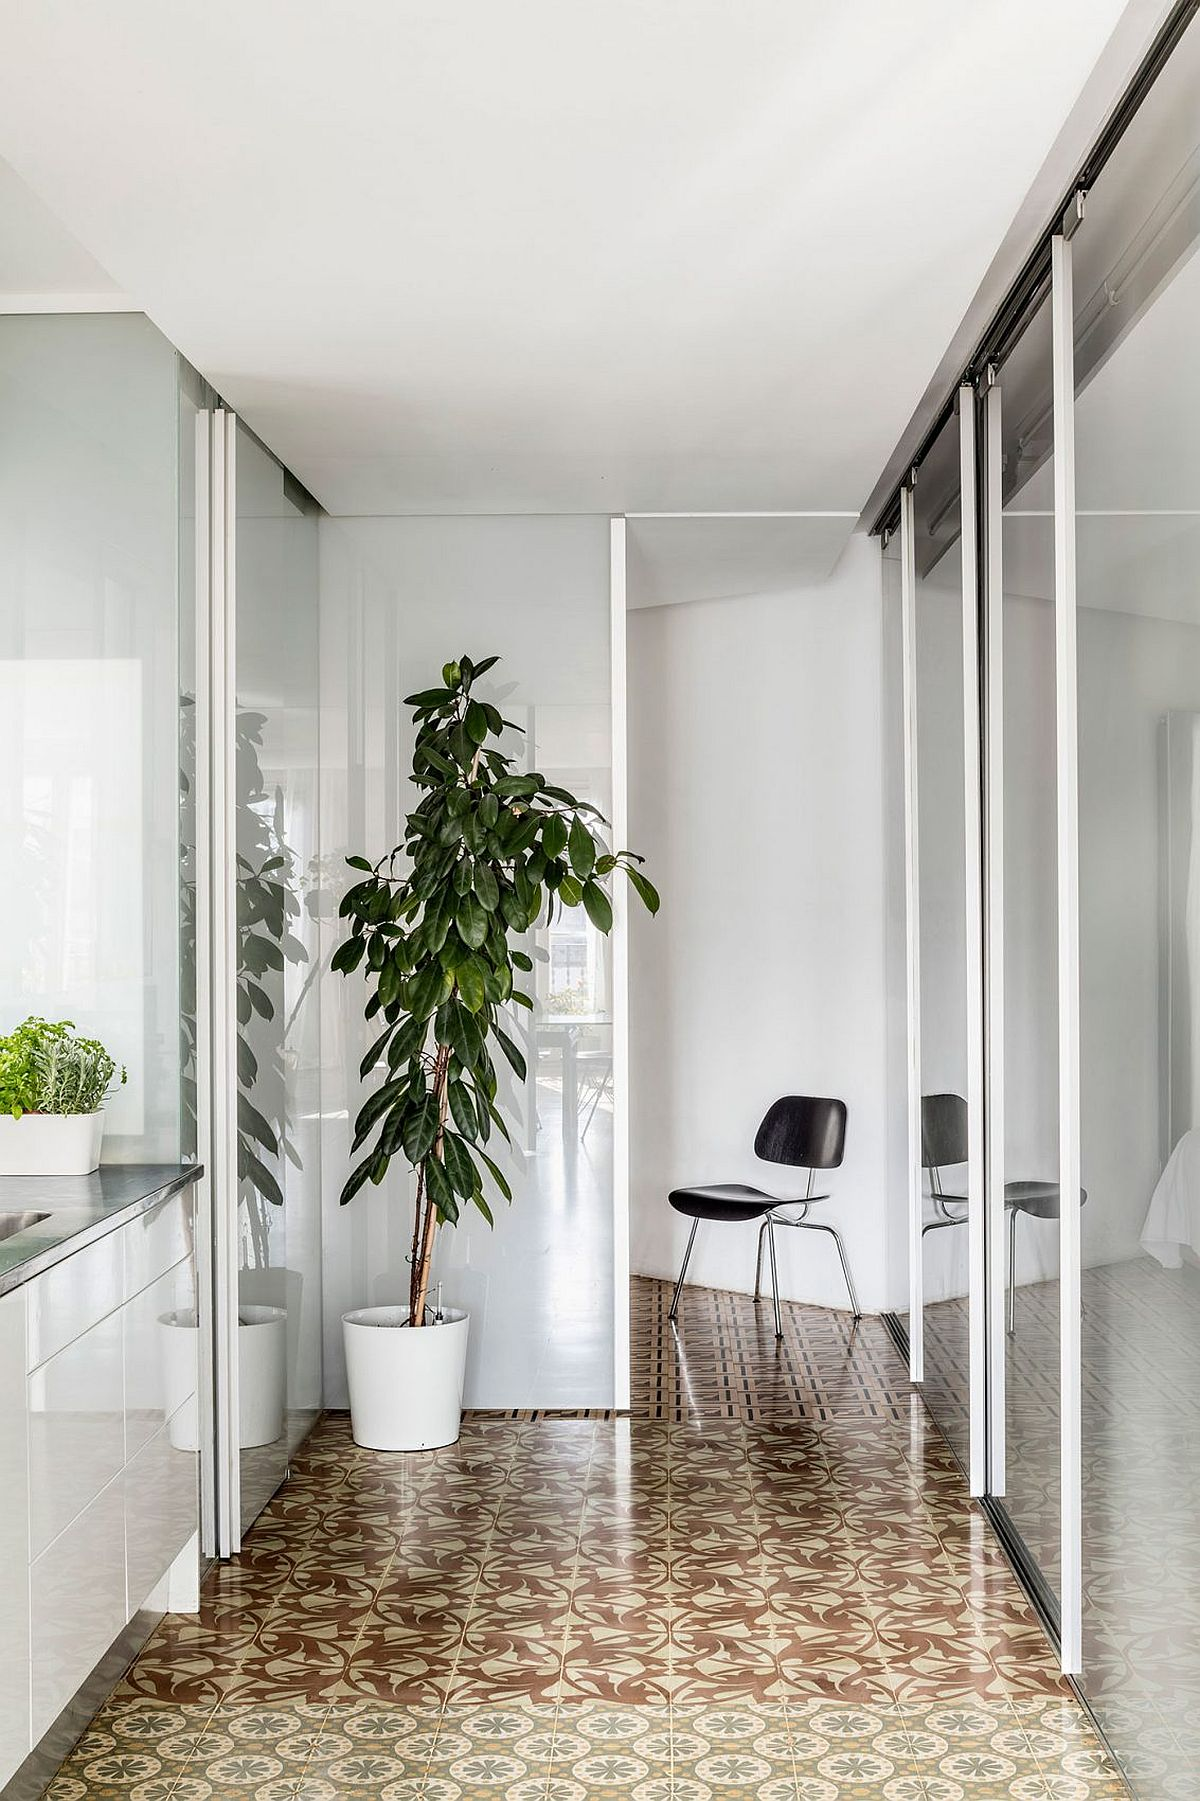 Sliding glass doors and partitions coupled with mosaic flooring inside the renovated Barcelona home